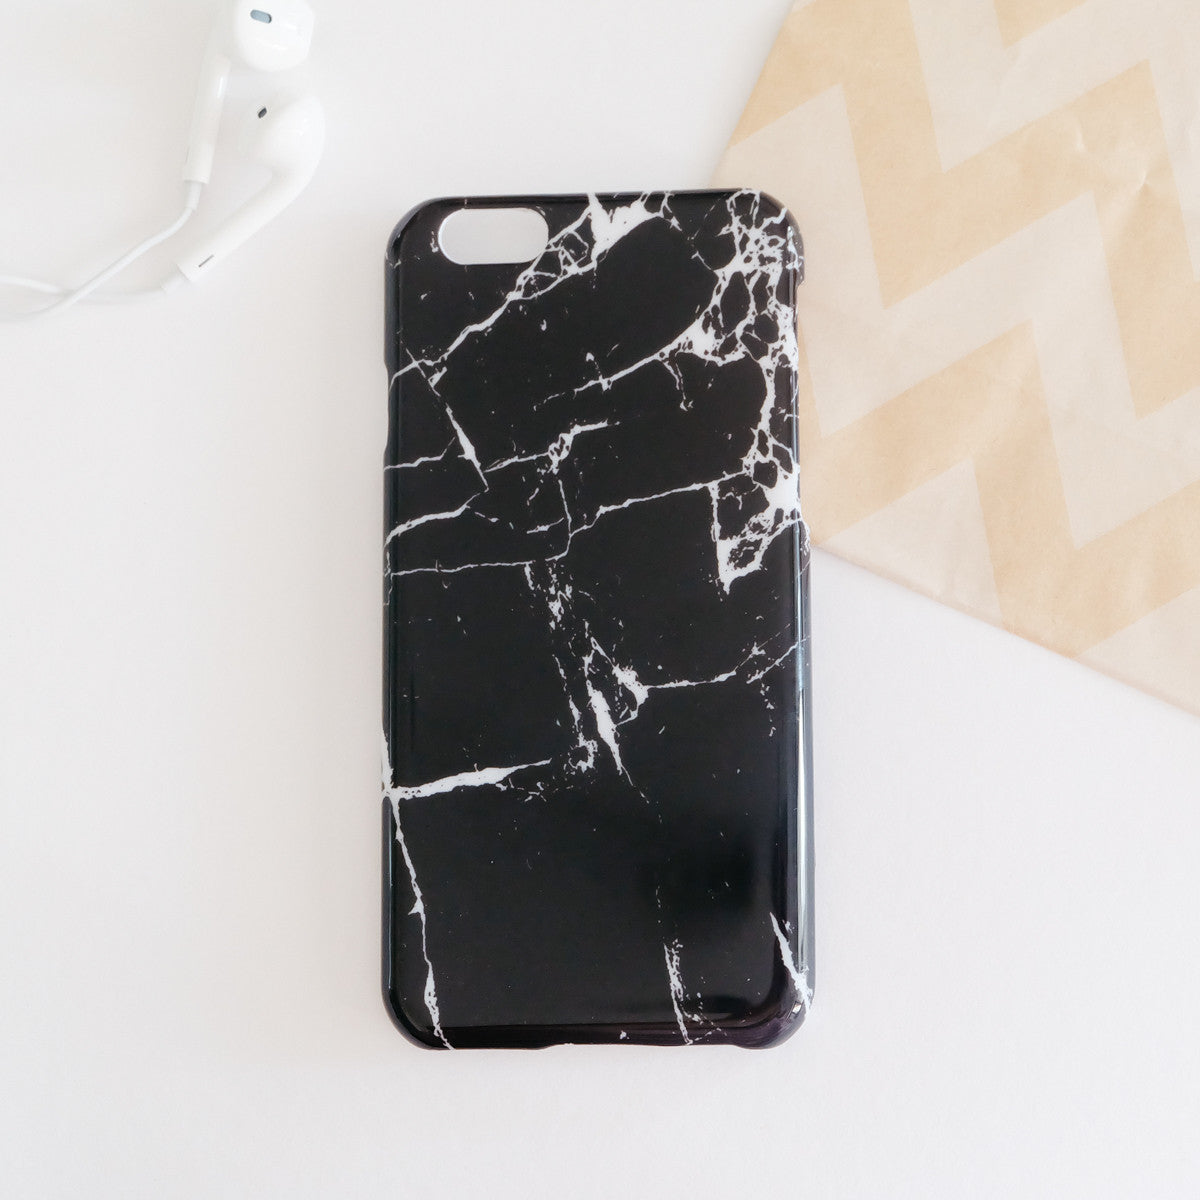 [Restocked] Marble iPhone Case